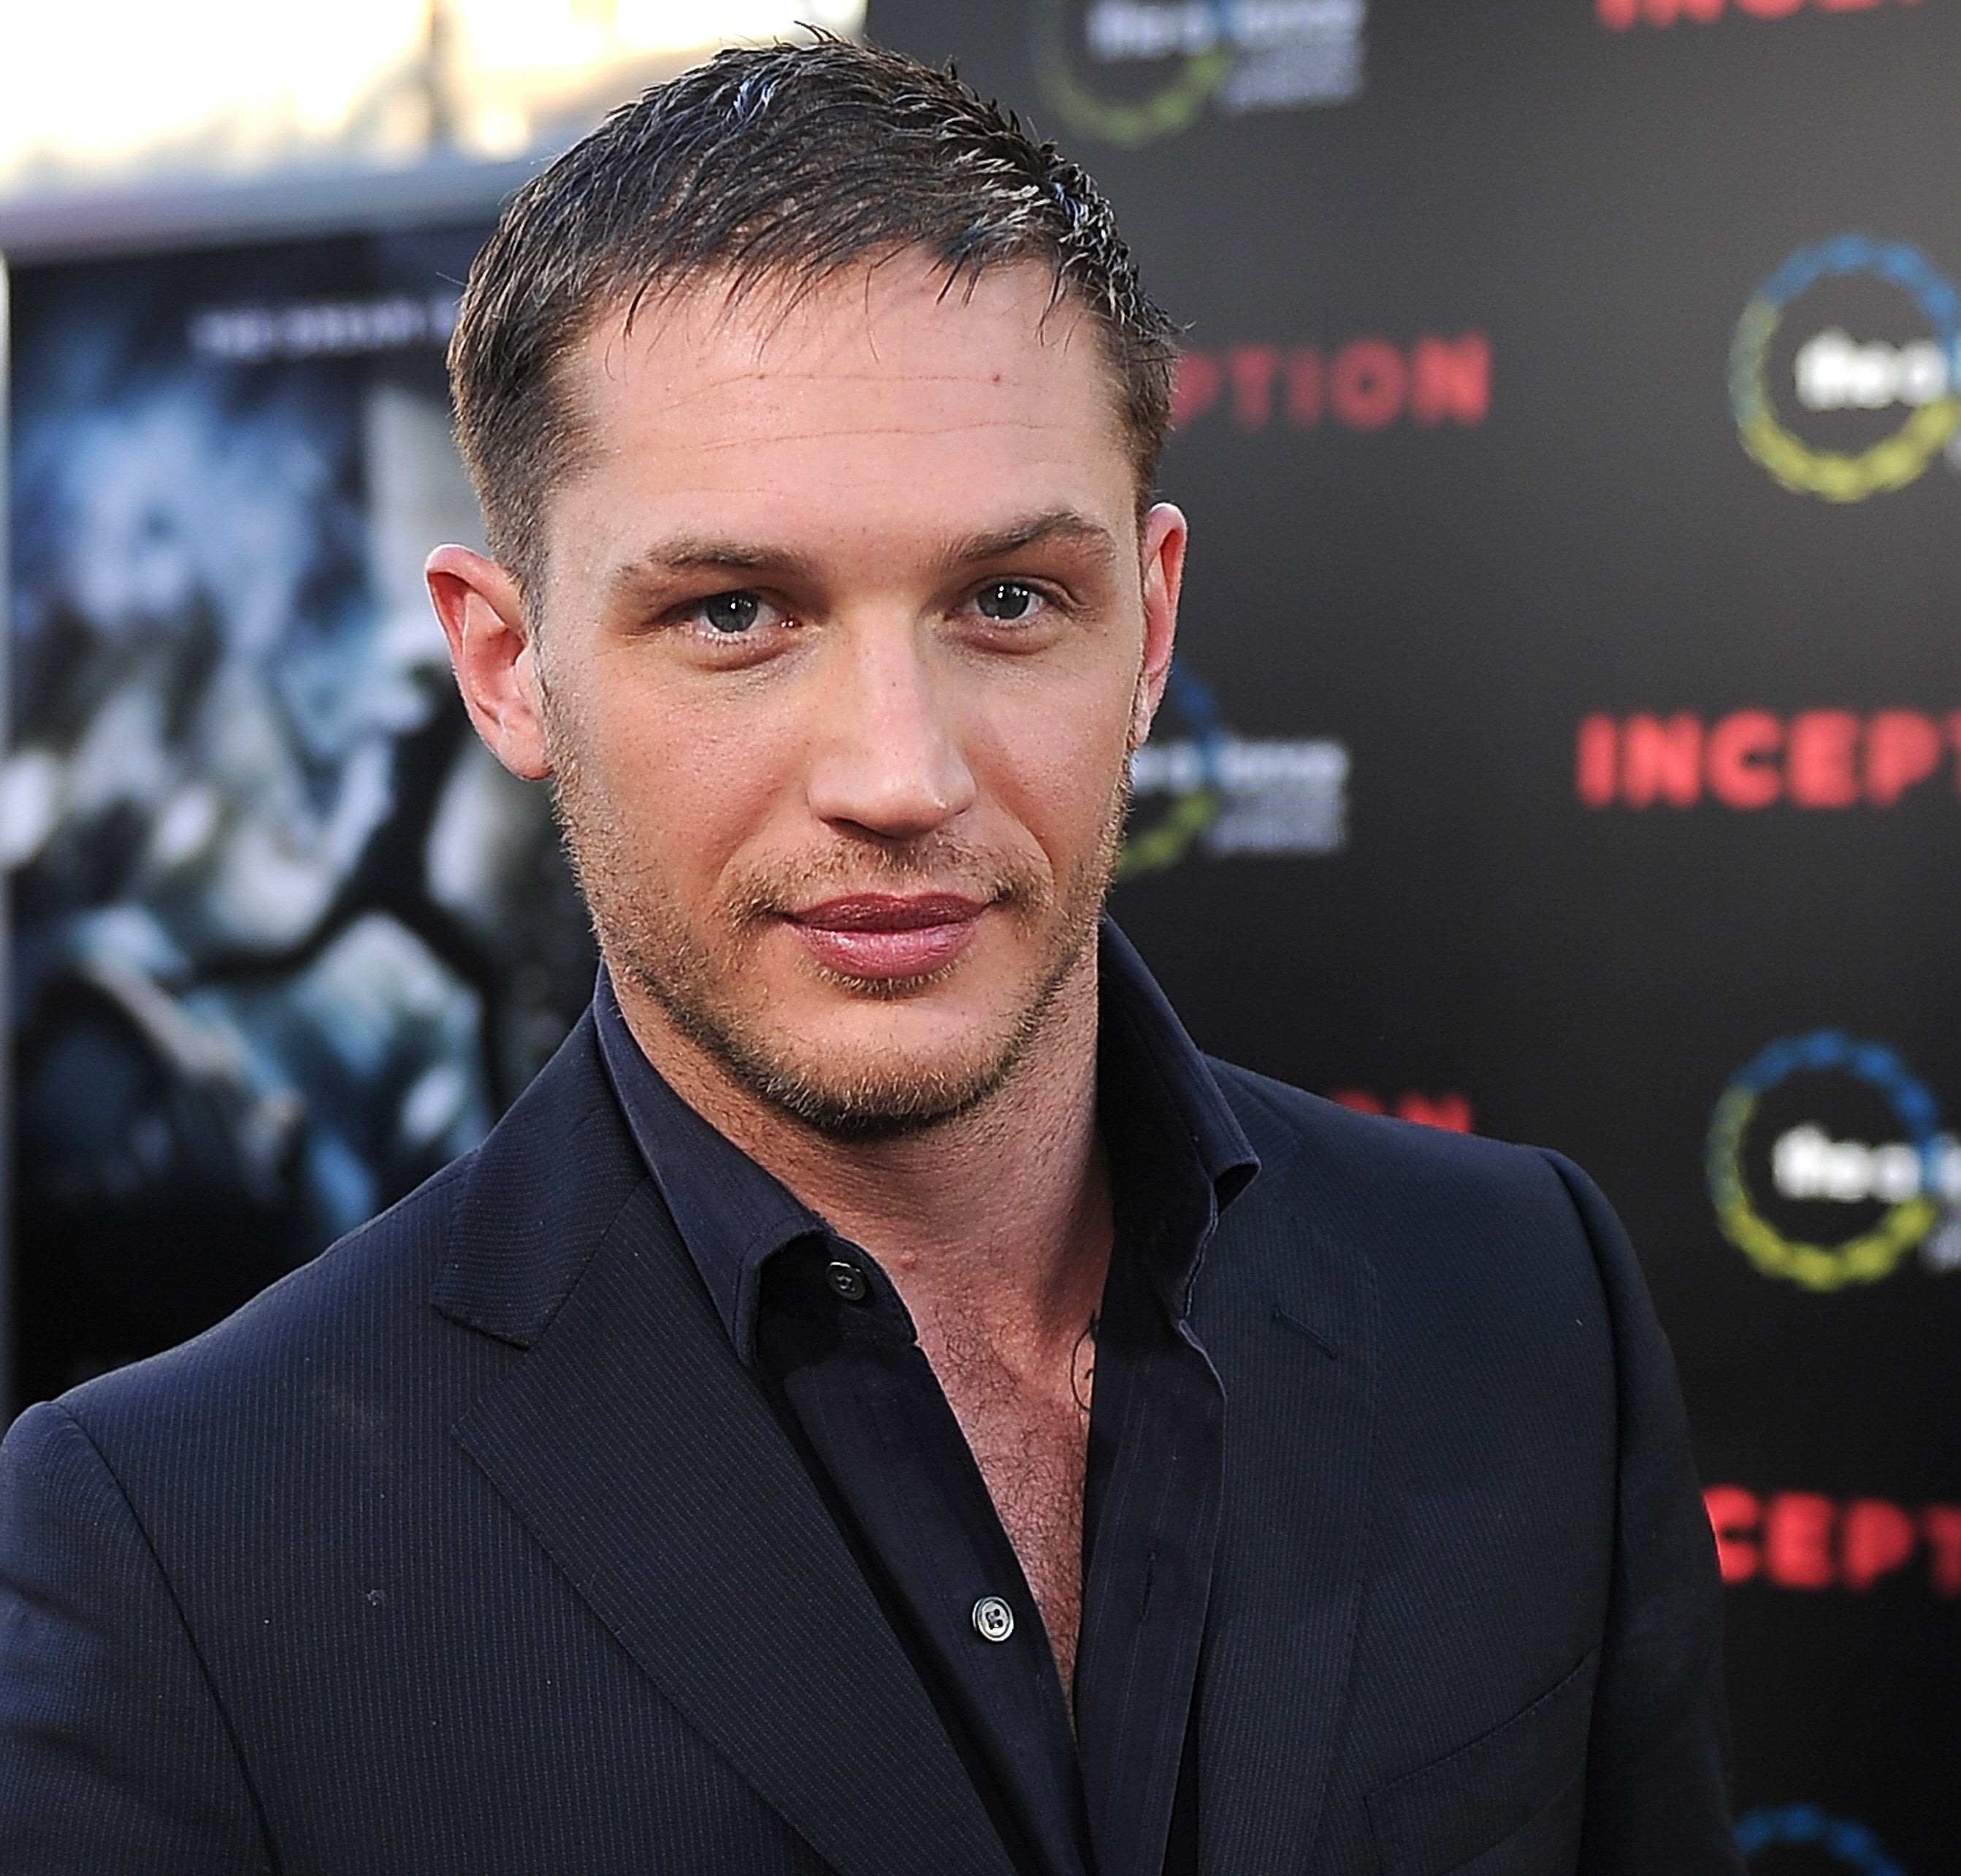 A photo of Tom Hardy at the premiere of Inception